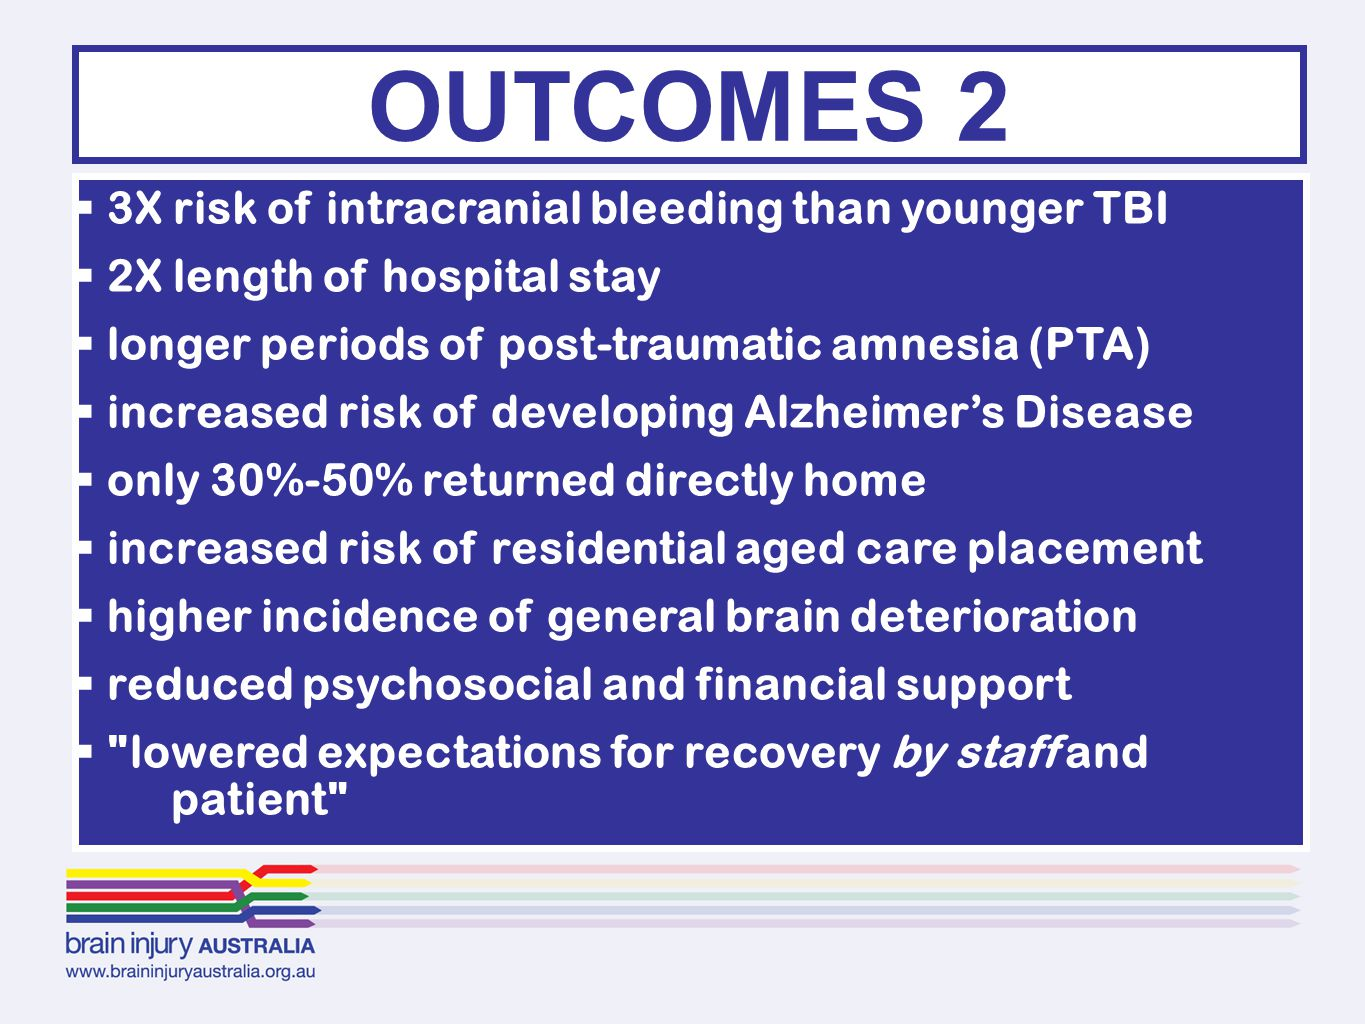  3X risk of intracranial bleeding than younger TBI  2X length of hospital stay  longer periods of post-traumatic amnesia (PTA)  increased risk of